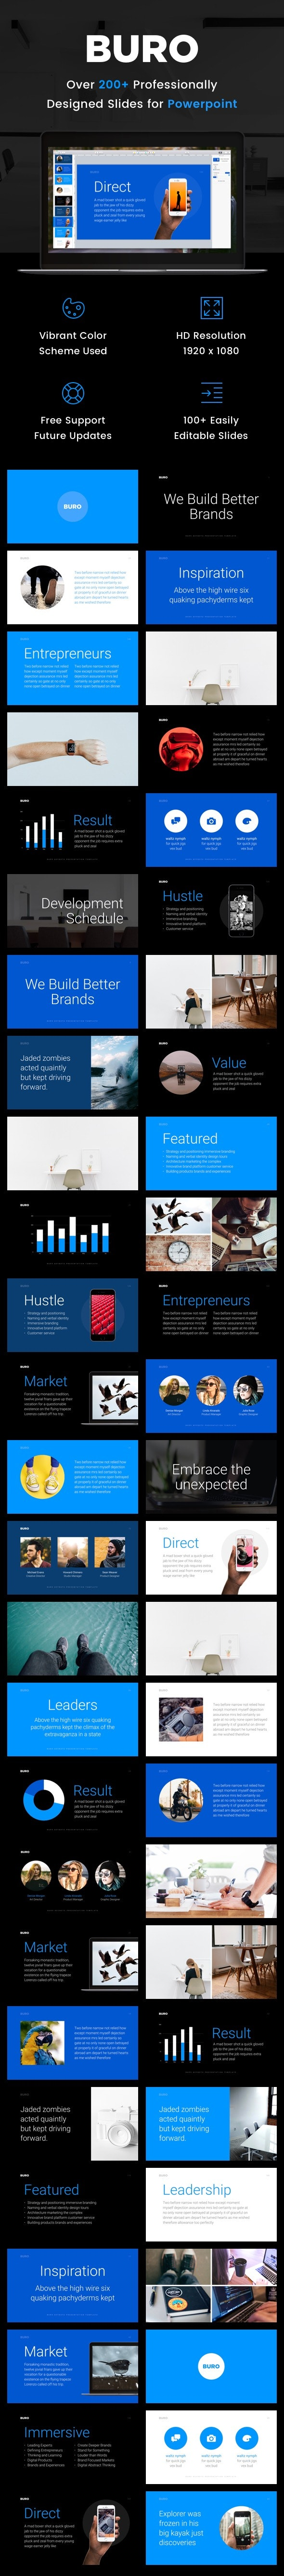 Buro - Business Powerpoint Presentation Template - Business PowerPoint Templates